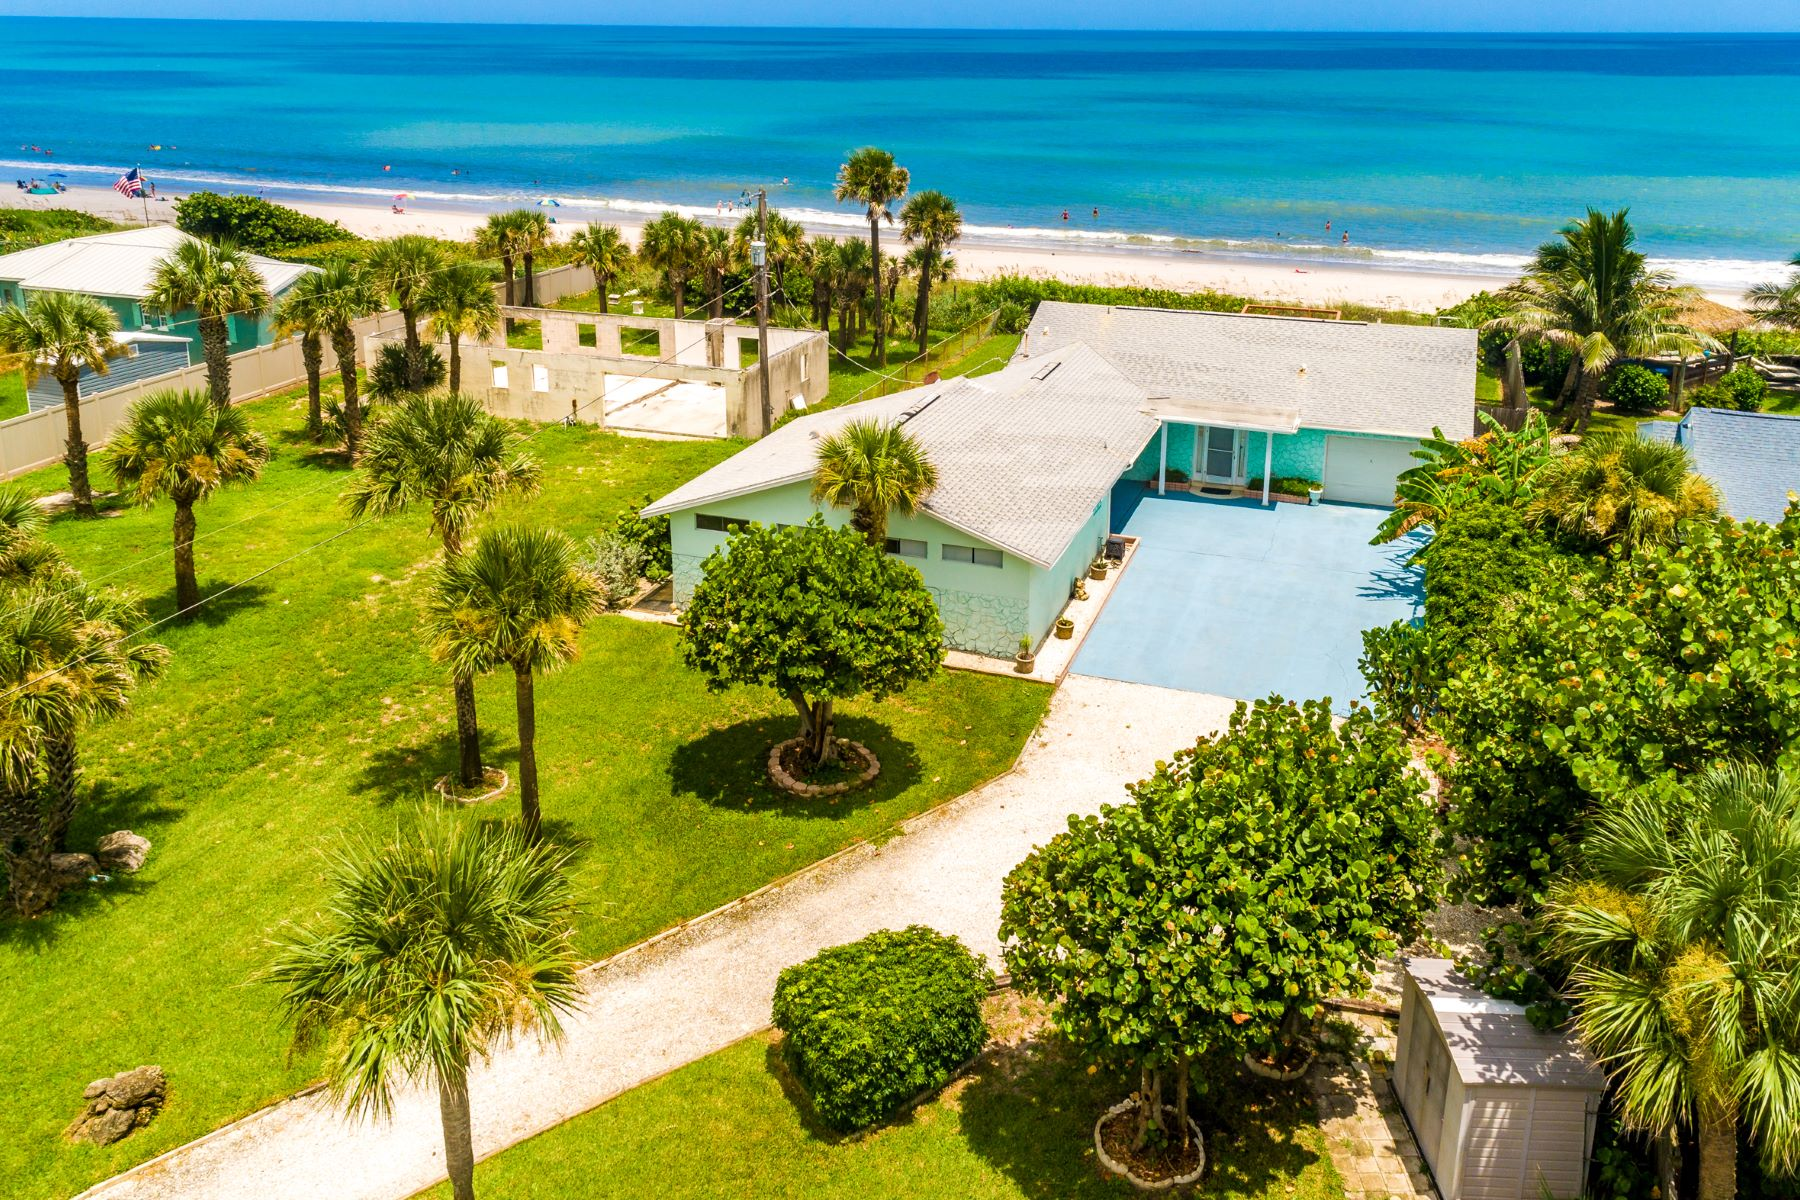 Single Family Homes for Sale at Oceanfront Home in Ultra Convenient Stretch of Coast 2115 N Highway A1A Indialantic, Florida 32903 United States